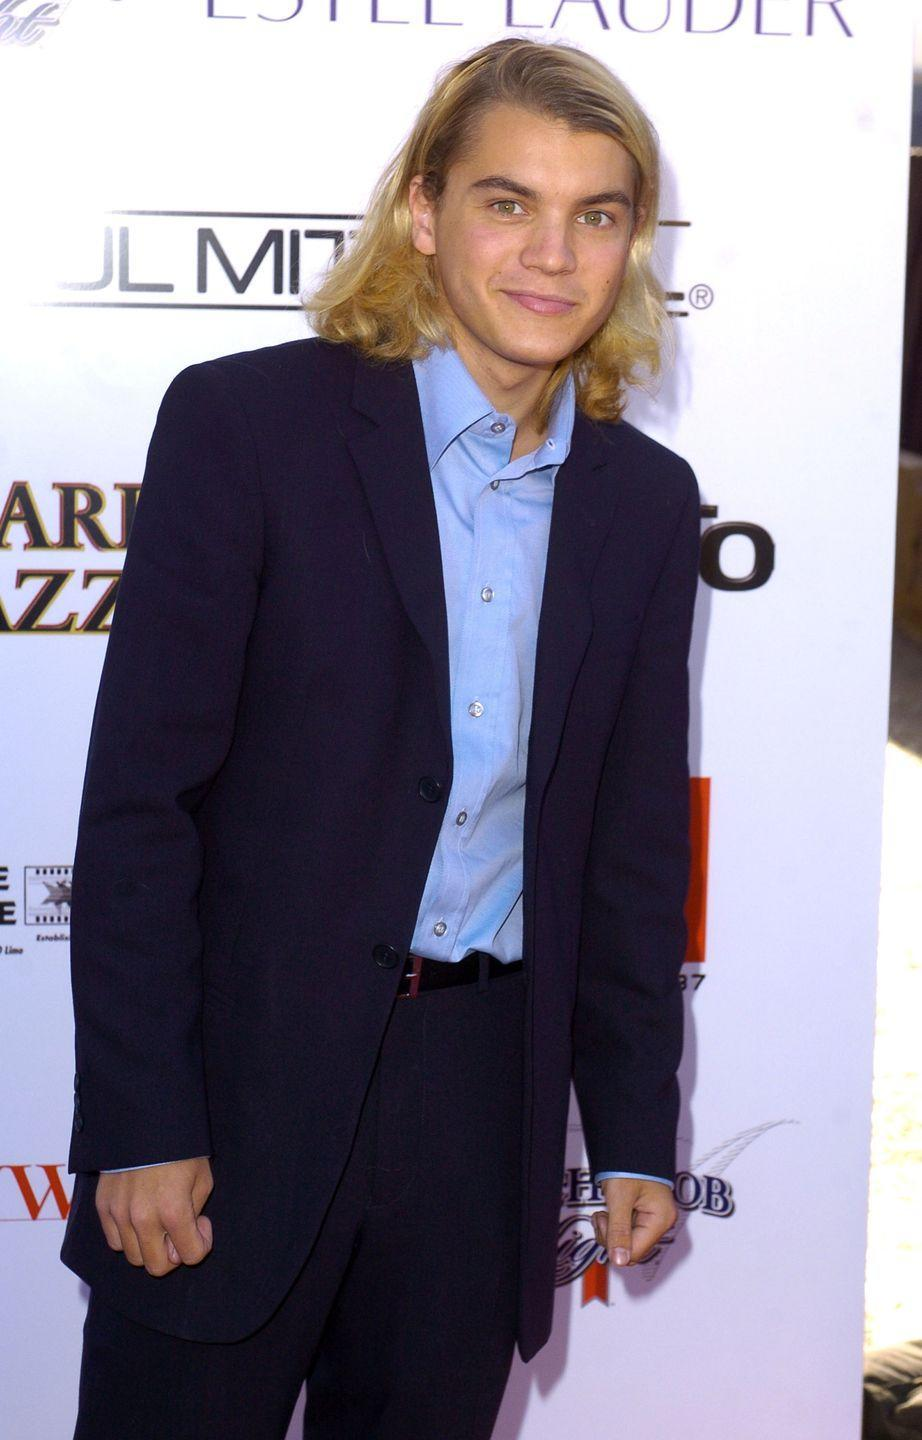 <p>Fans were surprised when Emile Hirsch arrived on the red carpet with blonde <em>and </em>long hair. It turns out, the actor was transitioning to a look for his role in <em>Lords of Dogtown</em>. </p>